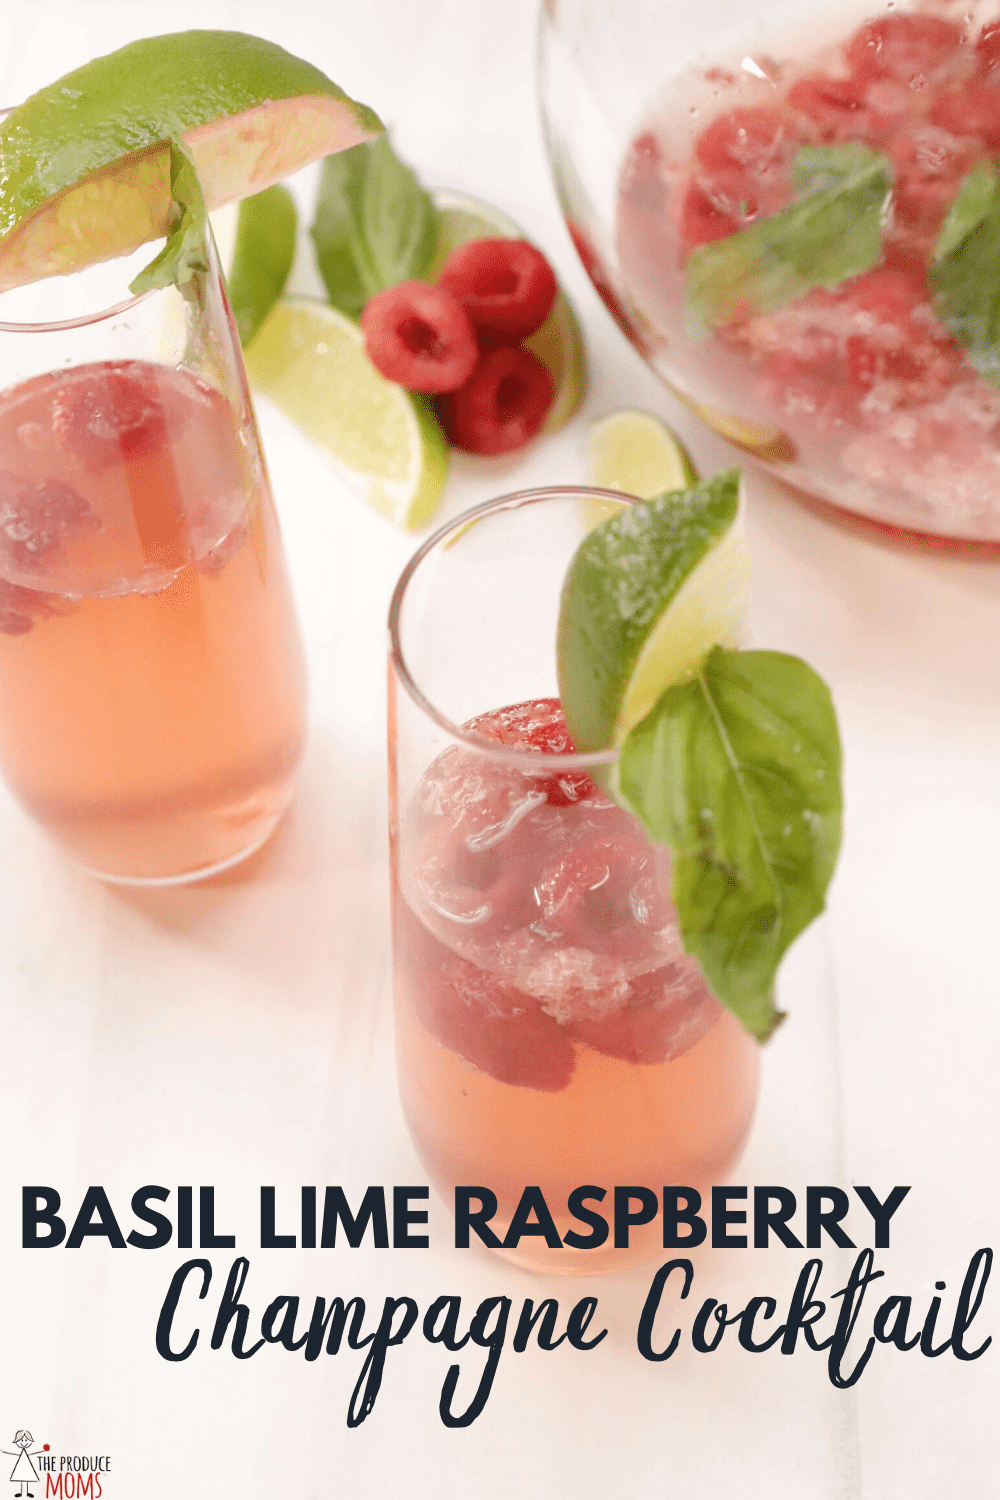 Basil Lime Raspberry Champagne Cocktail